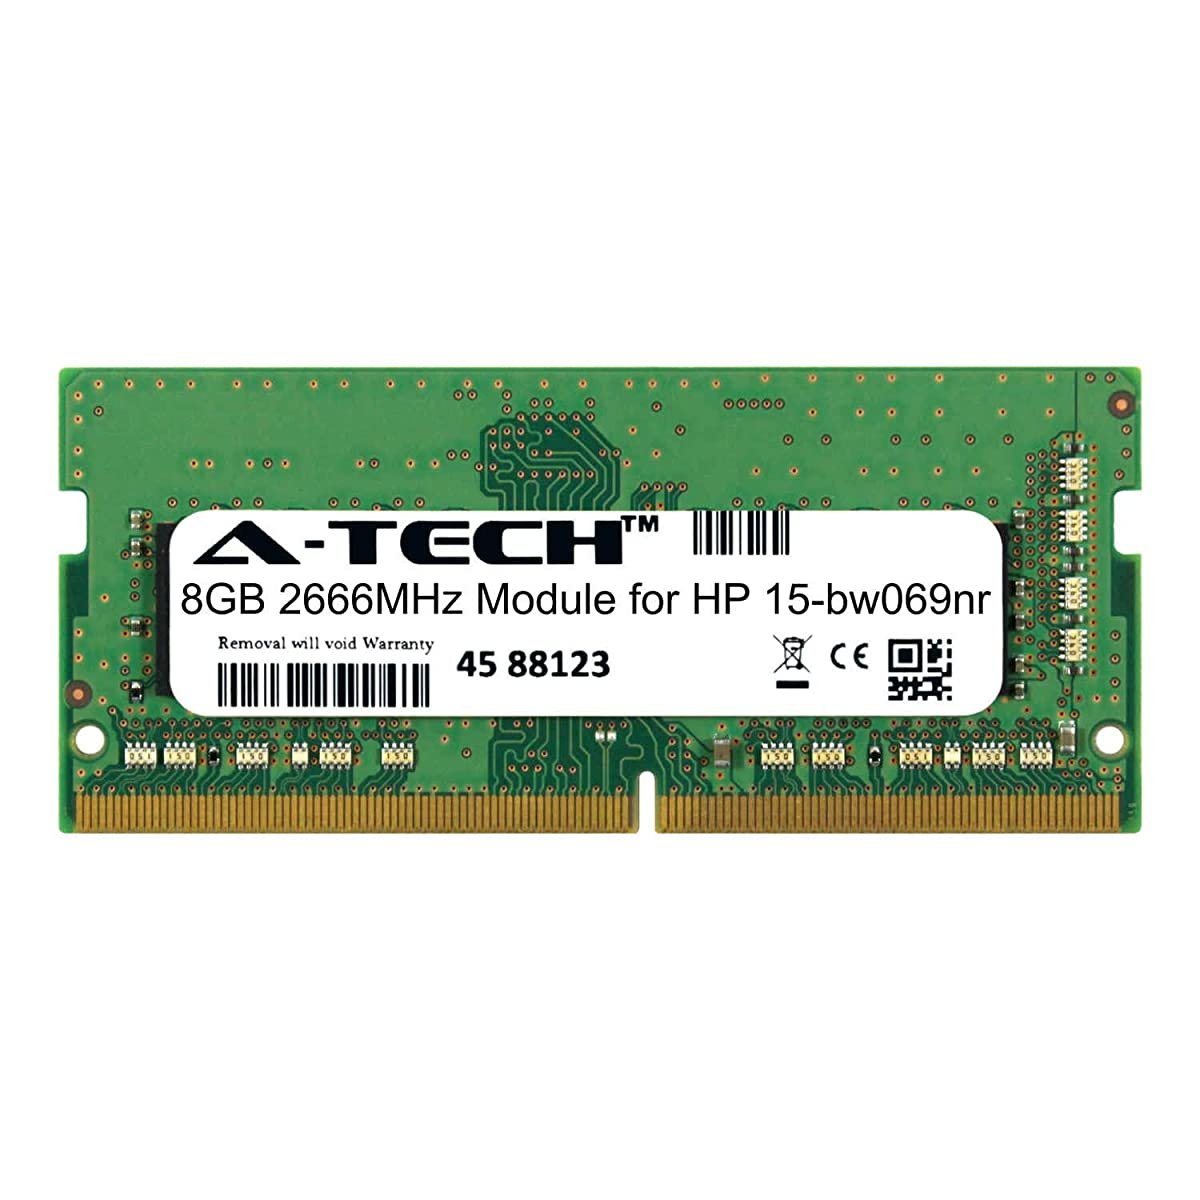 A-Tech 8GB Module for HP 15-bw069nr Laptop & Notebook Compatible DDR4 2666Mhz Memory Ram (ATMS381398A25978X1)